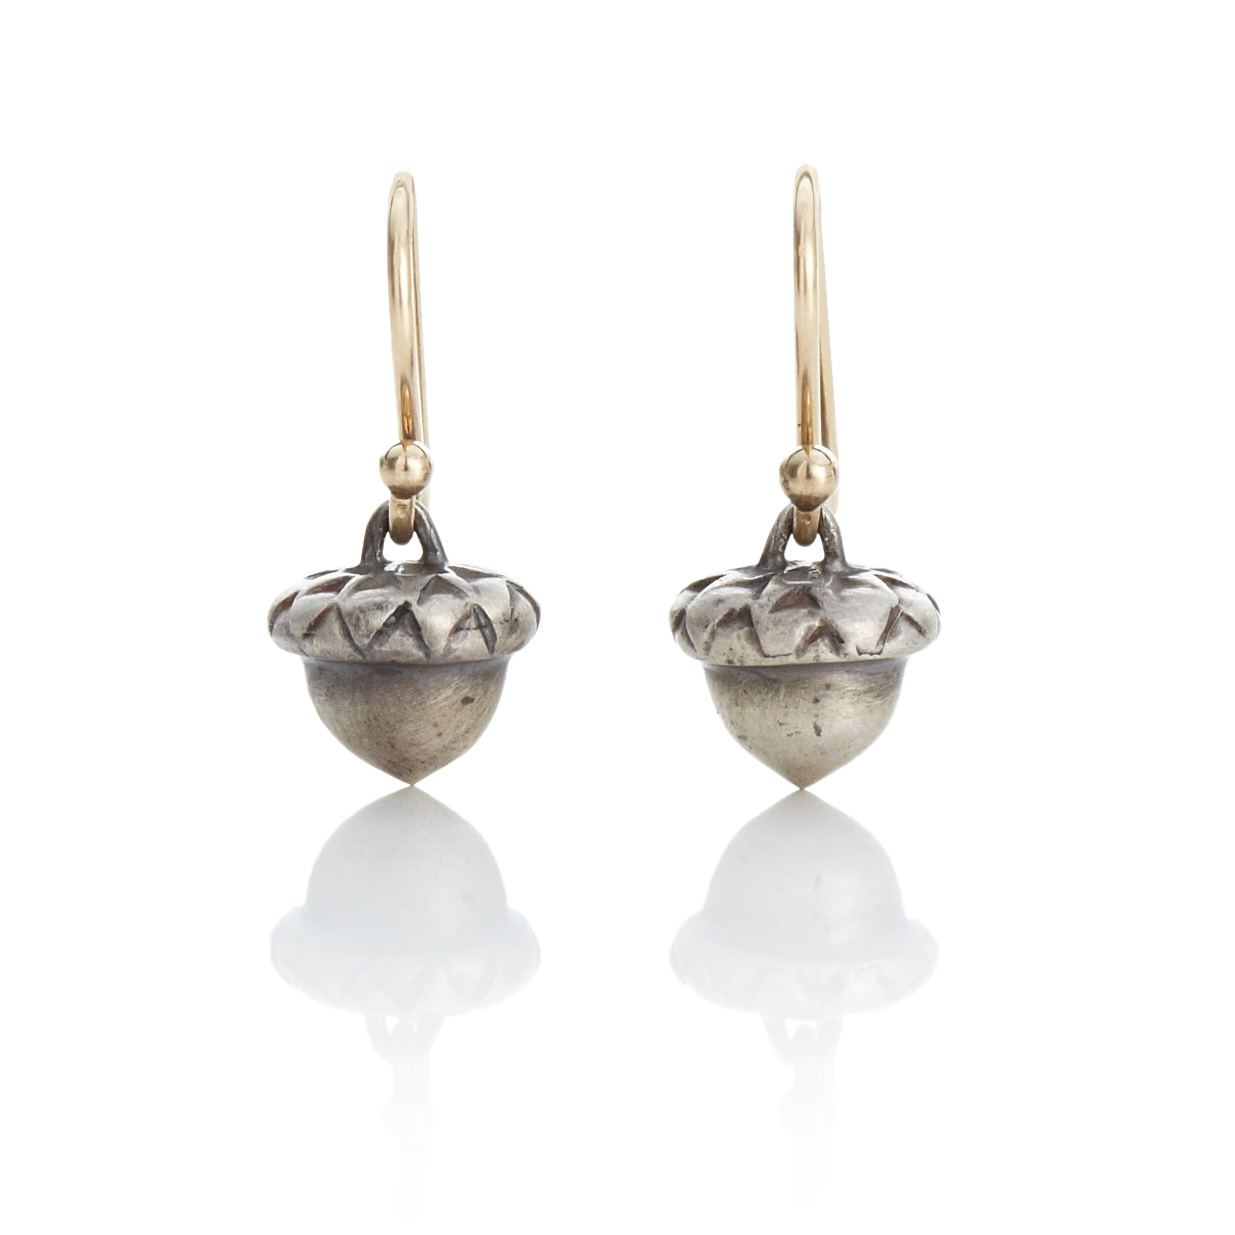 Gabriella Kiss Sterling Silver Acorn Earrings